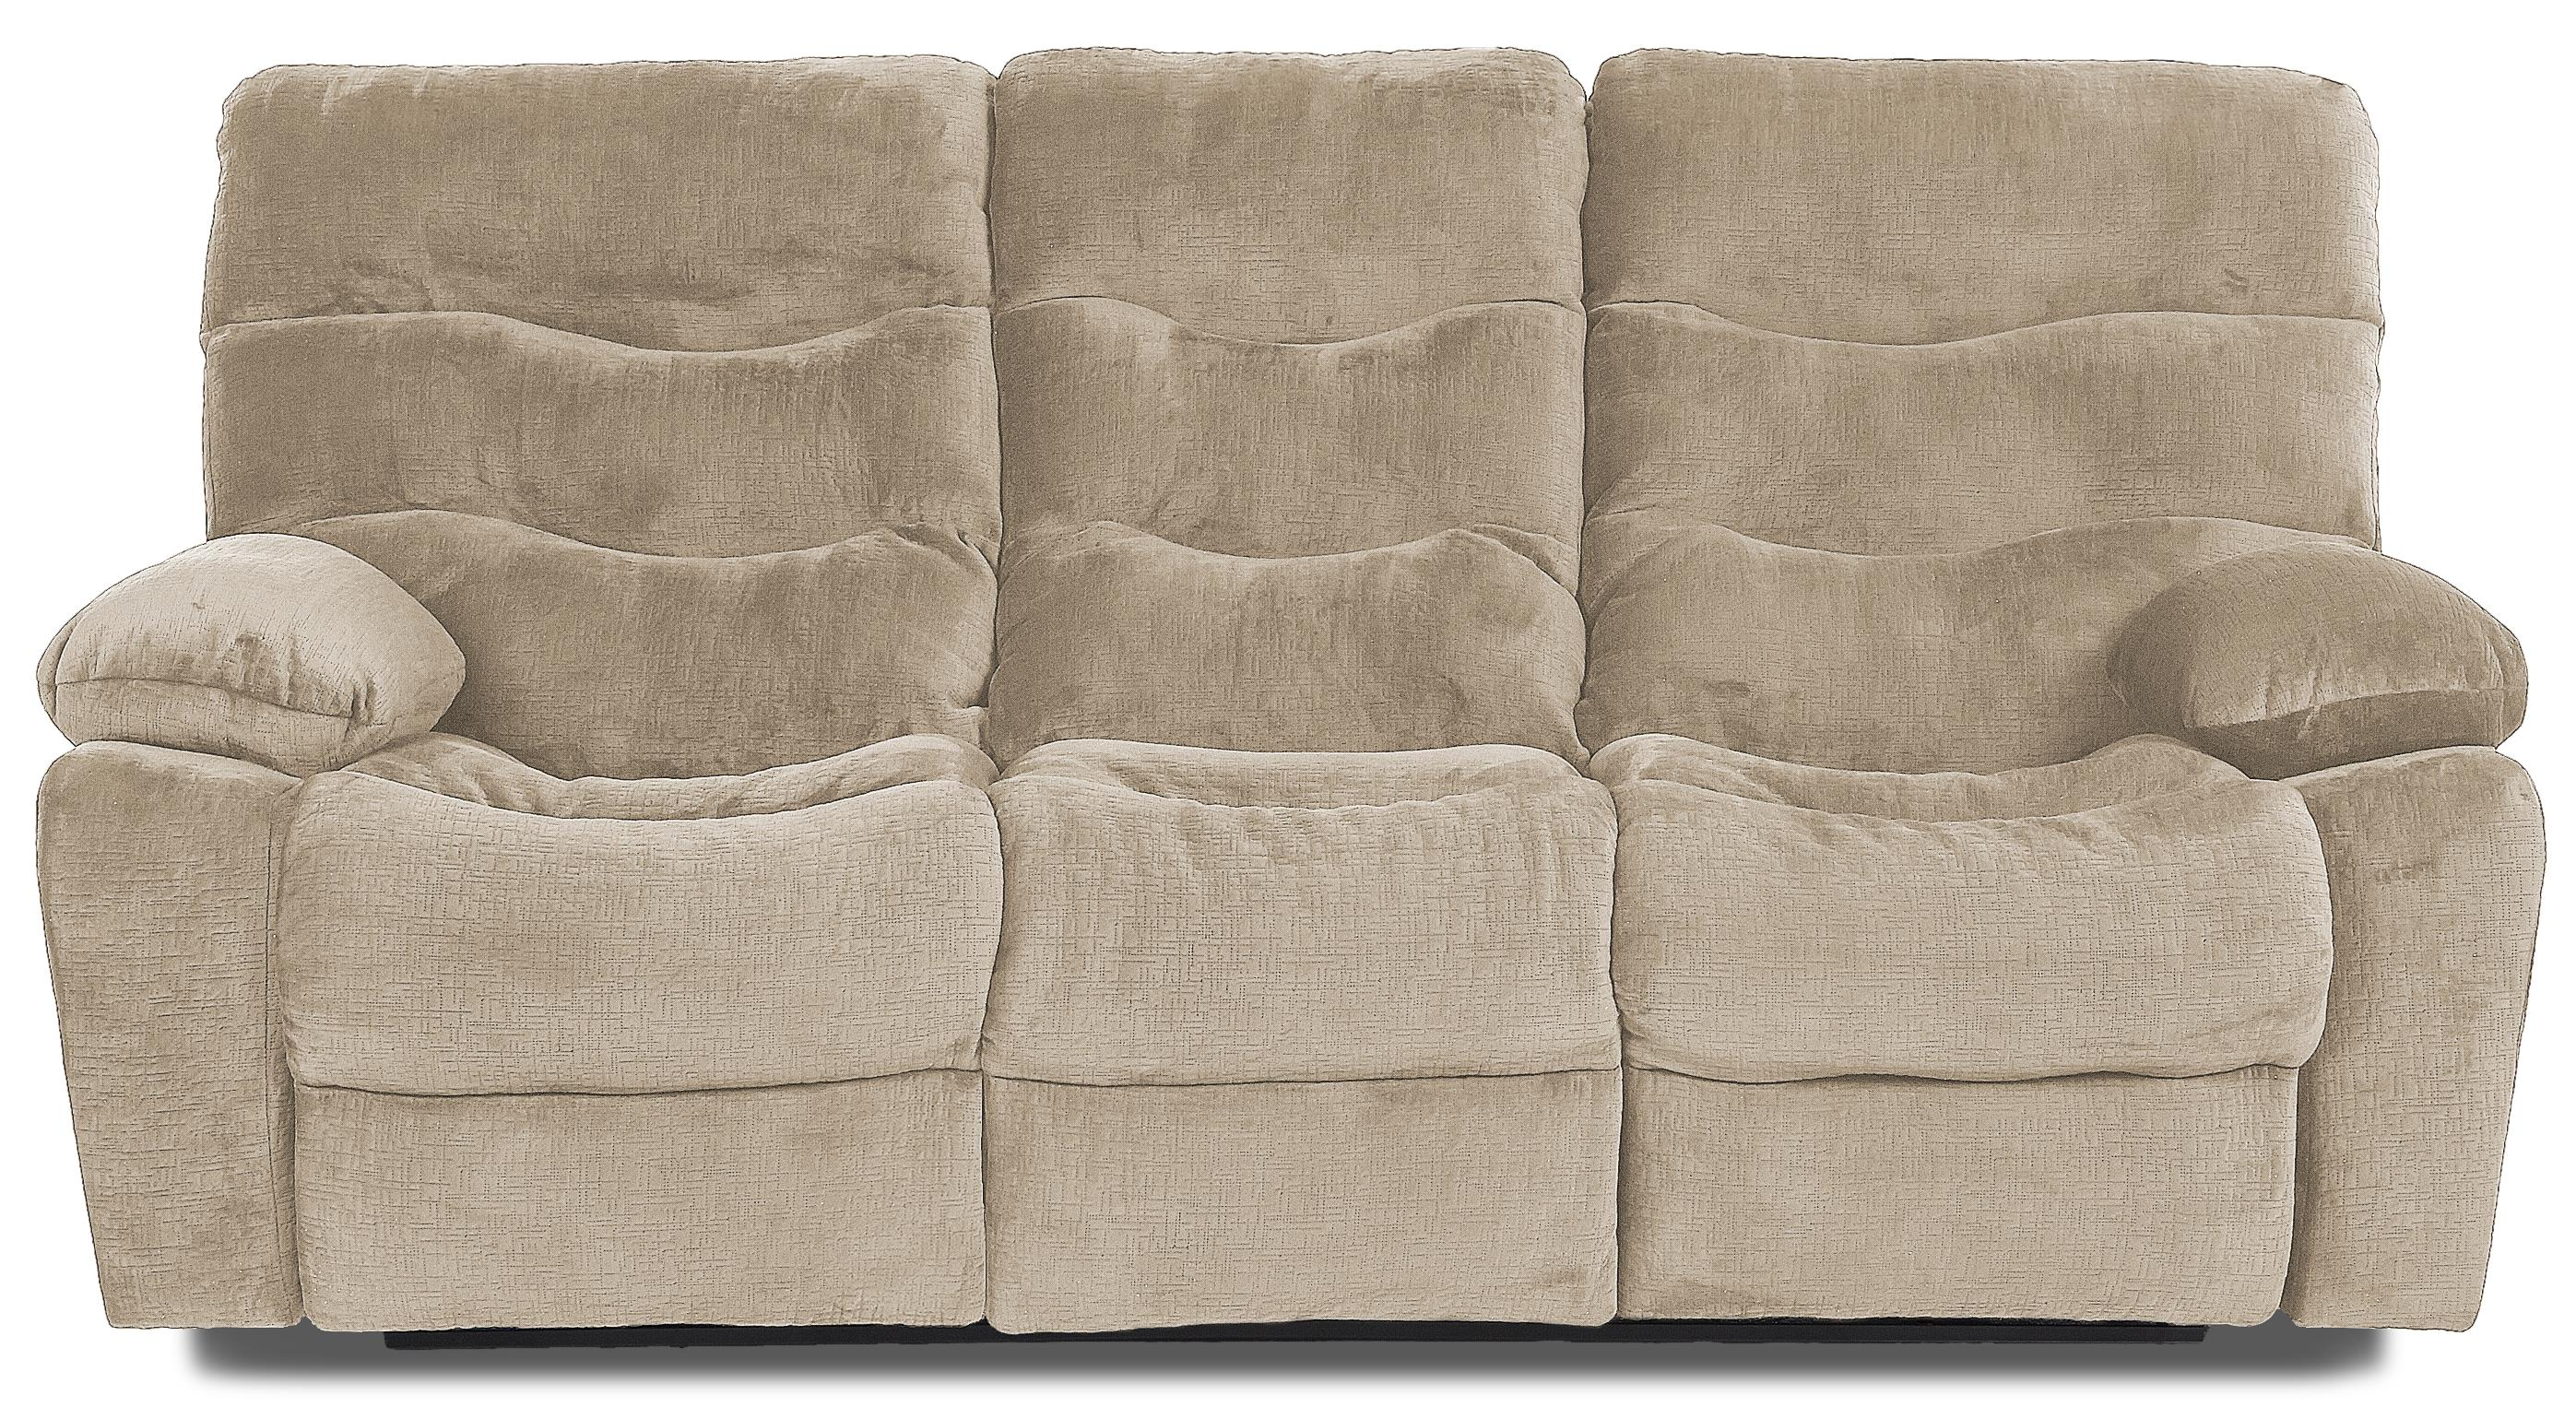 Klaussner Hercules Power Reclining Sofa - Item Number: 27403 PWRS-EtchToast